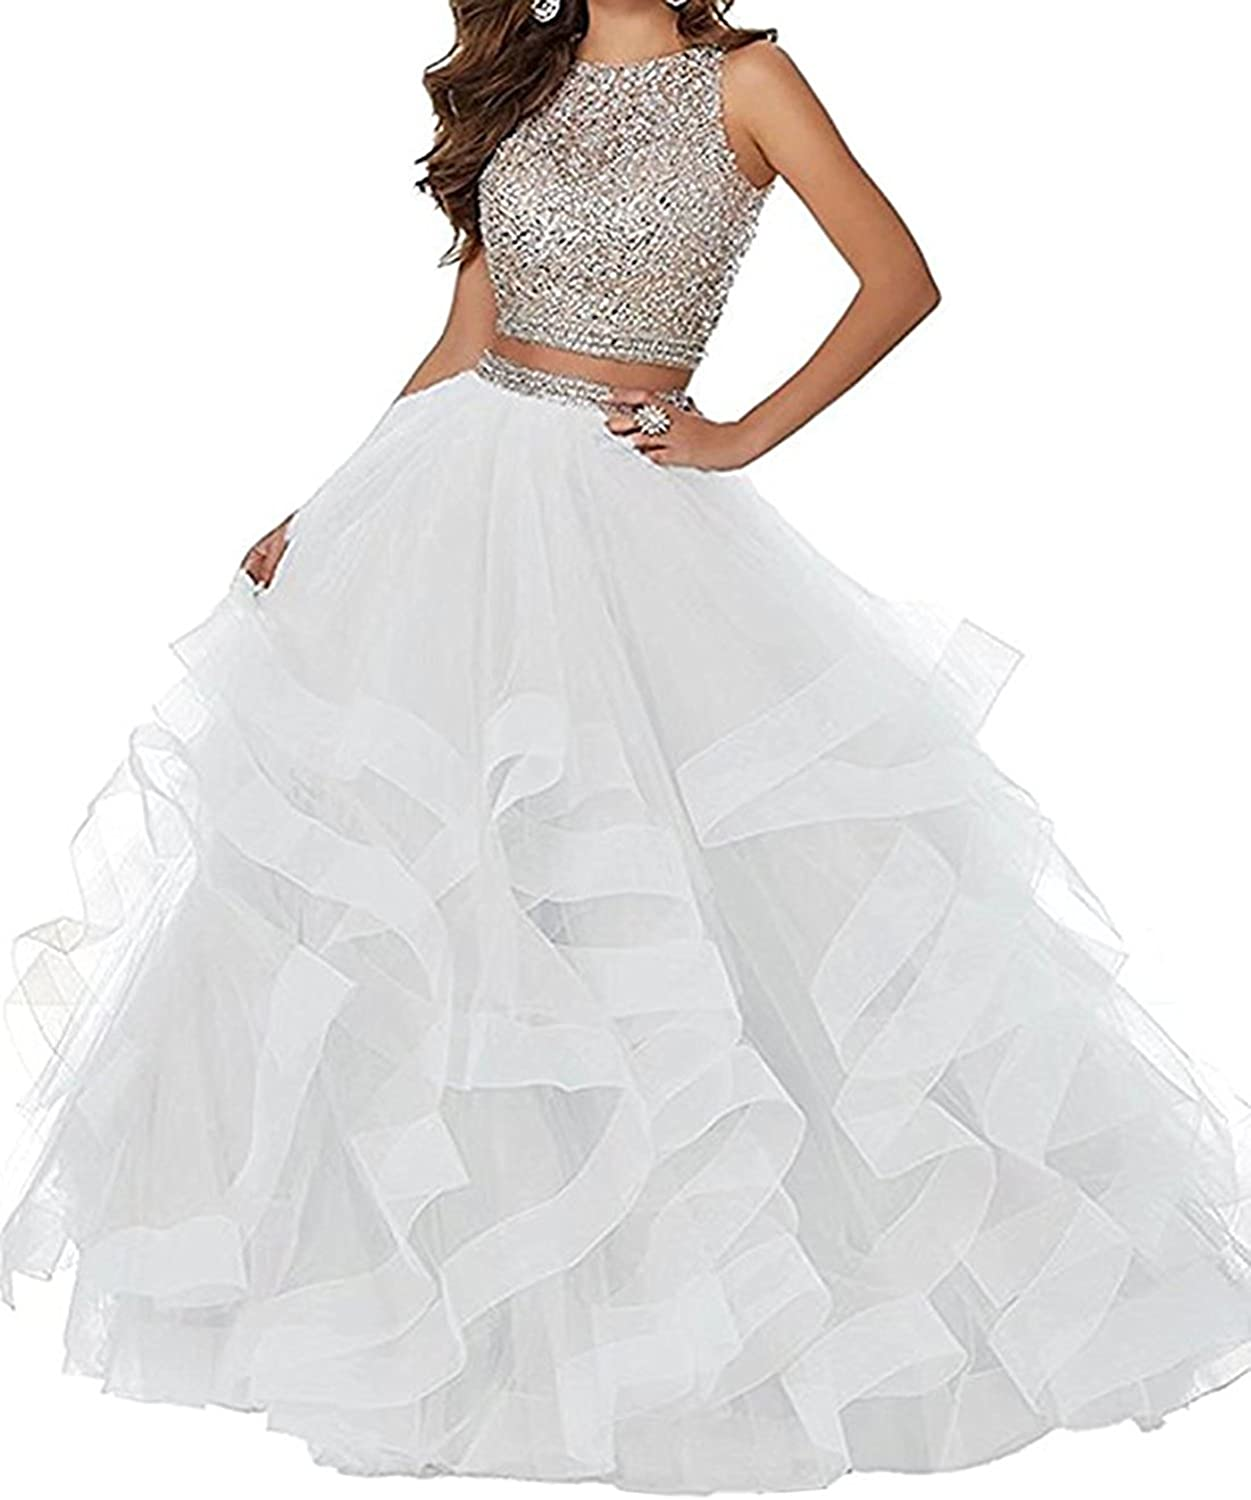 20KyleBird Women's Sexy Two Piece Beaded Prom Dresses Long Tulle Asymmetric Layered Formal Party Ball Gowns Open Back